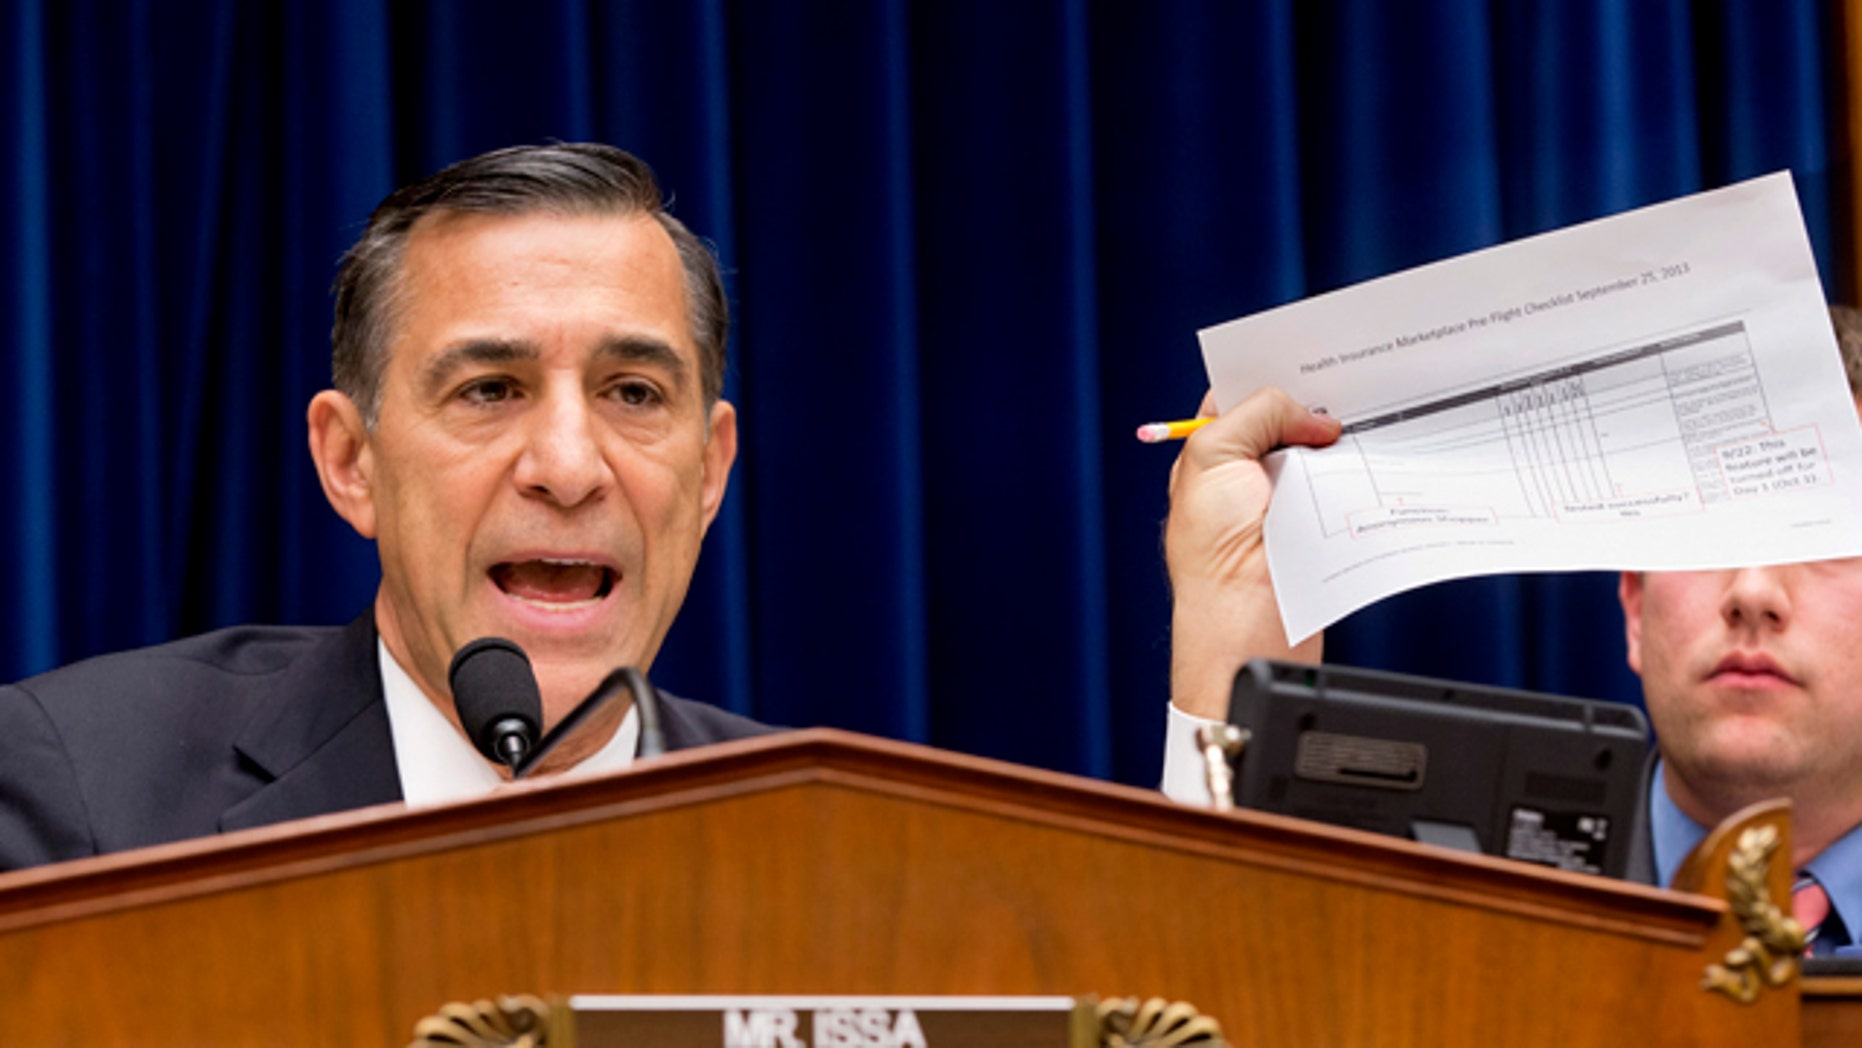 Nov. 13, 2013: House Oversight Committee Chairman Rep. Darrell Issa, R-Calif., holds up a checklist related to the preparation for the implementation of the ObamaCare healthcare program, and specifically, the HealthCare.gov website, on Capitol Hill in Washington.